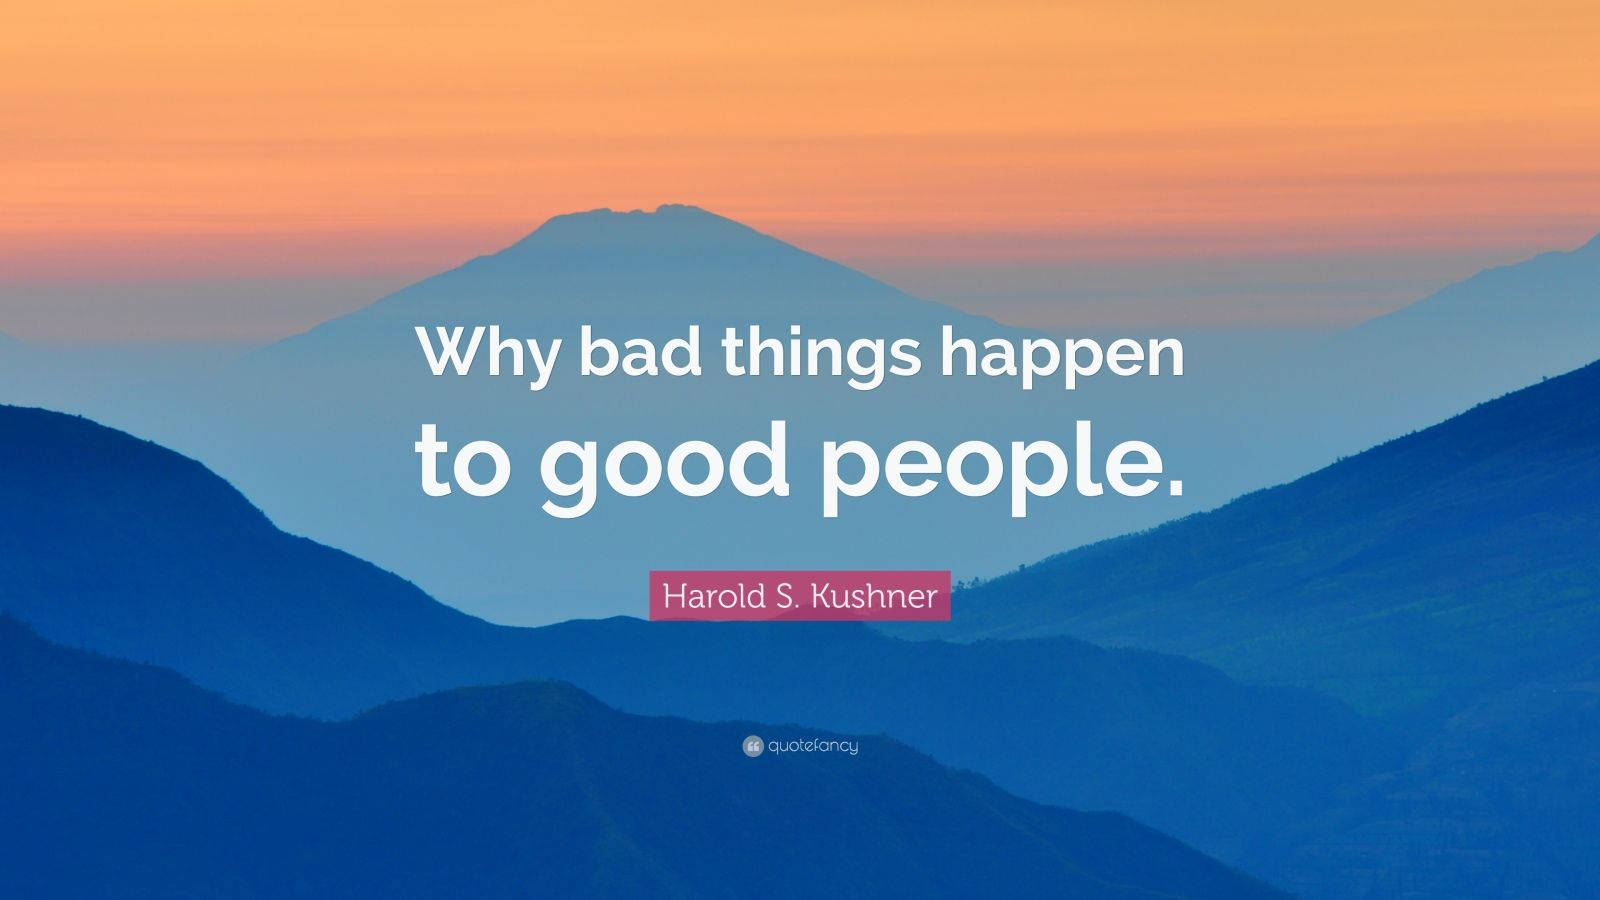 a reflection on harold kushners when bad things happen to good people This is the discussion guide for when bad things happen to good people by harold s kushner.